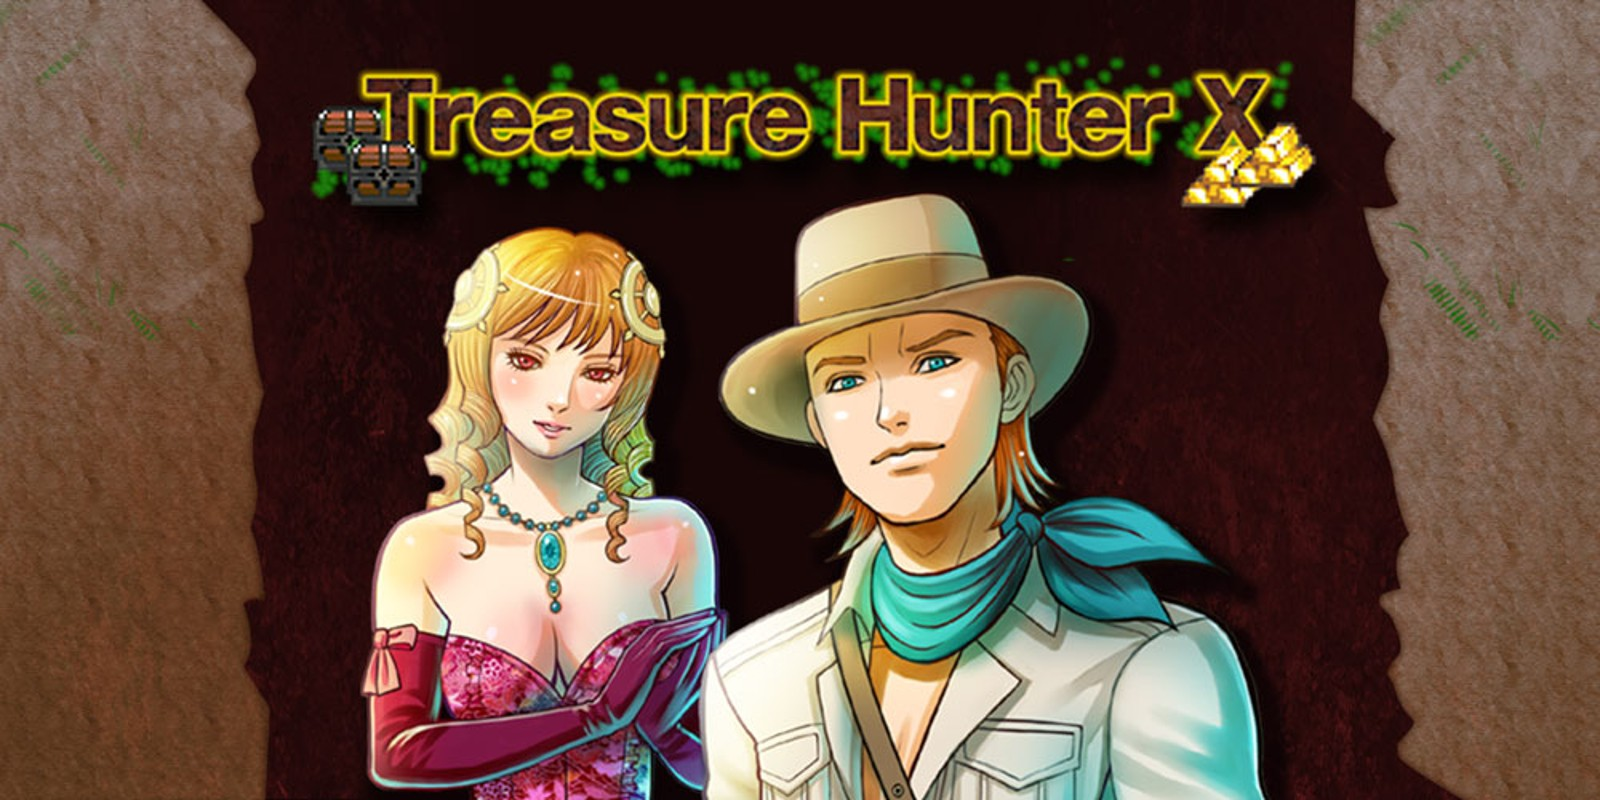 Treasure Hunter X